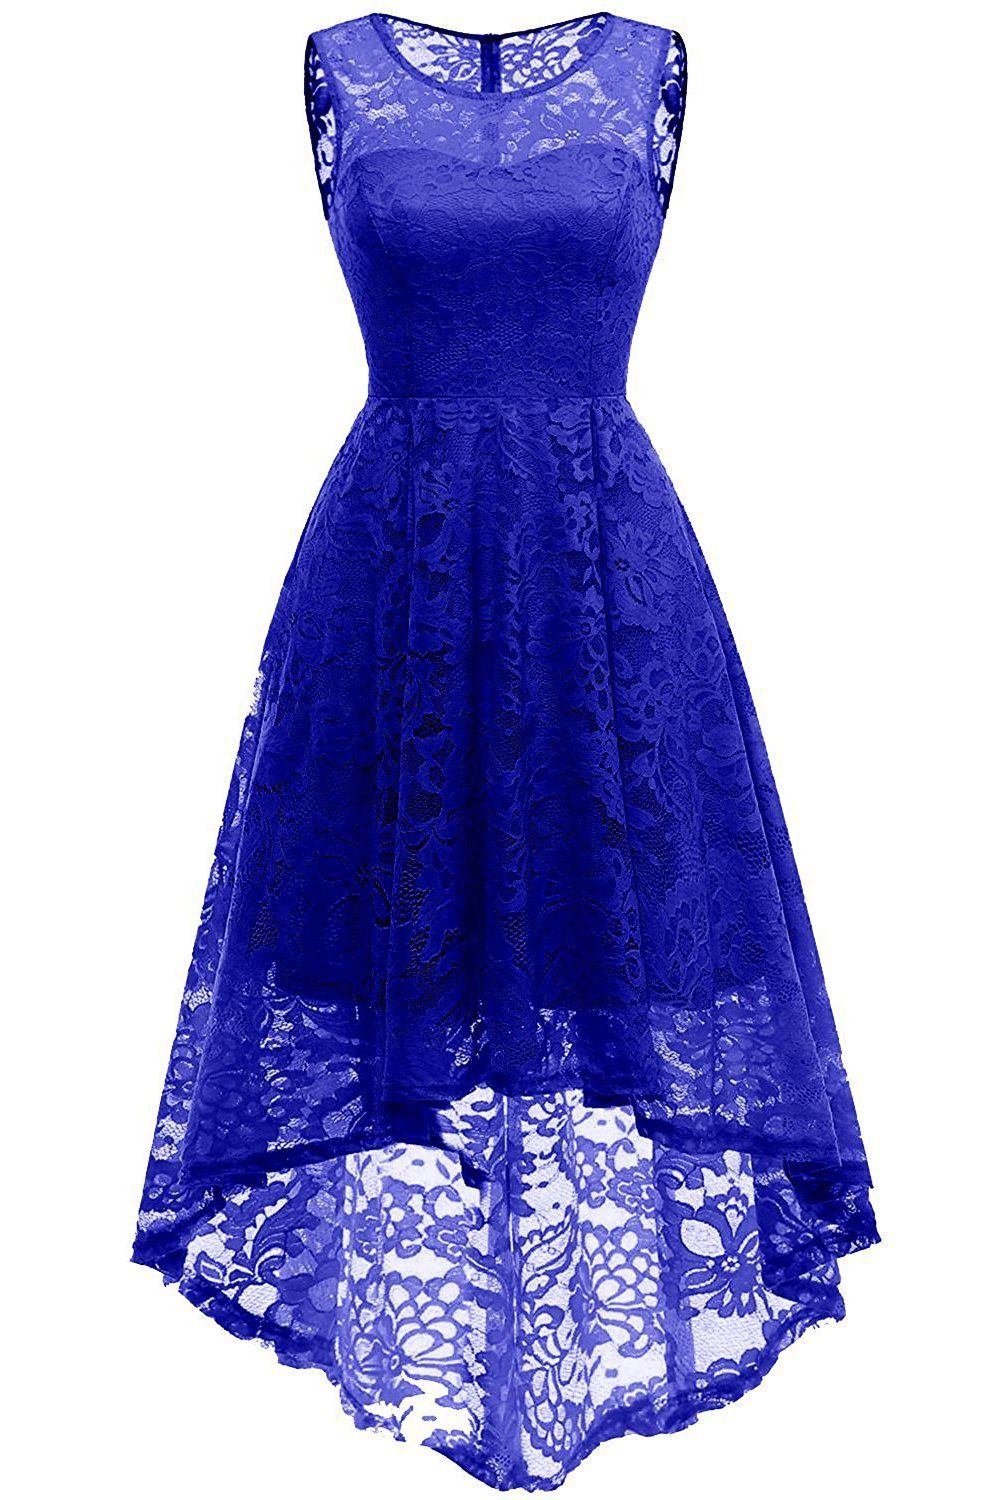 Lace Royal Blue/Burgundy Short Party Dress, Elegant Short